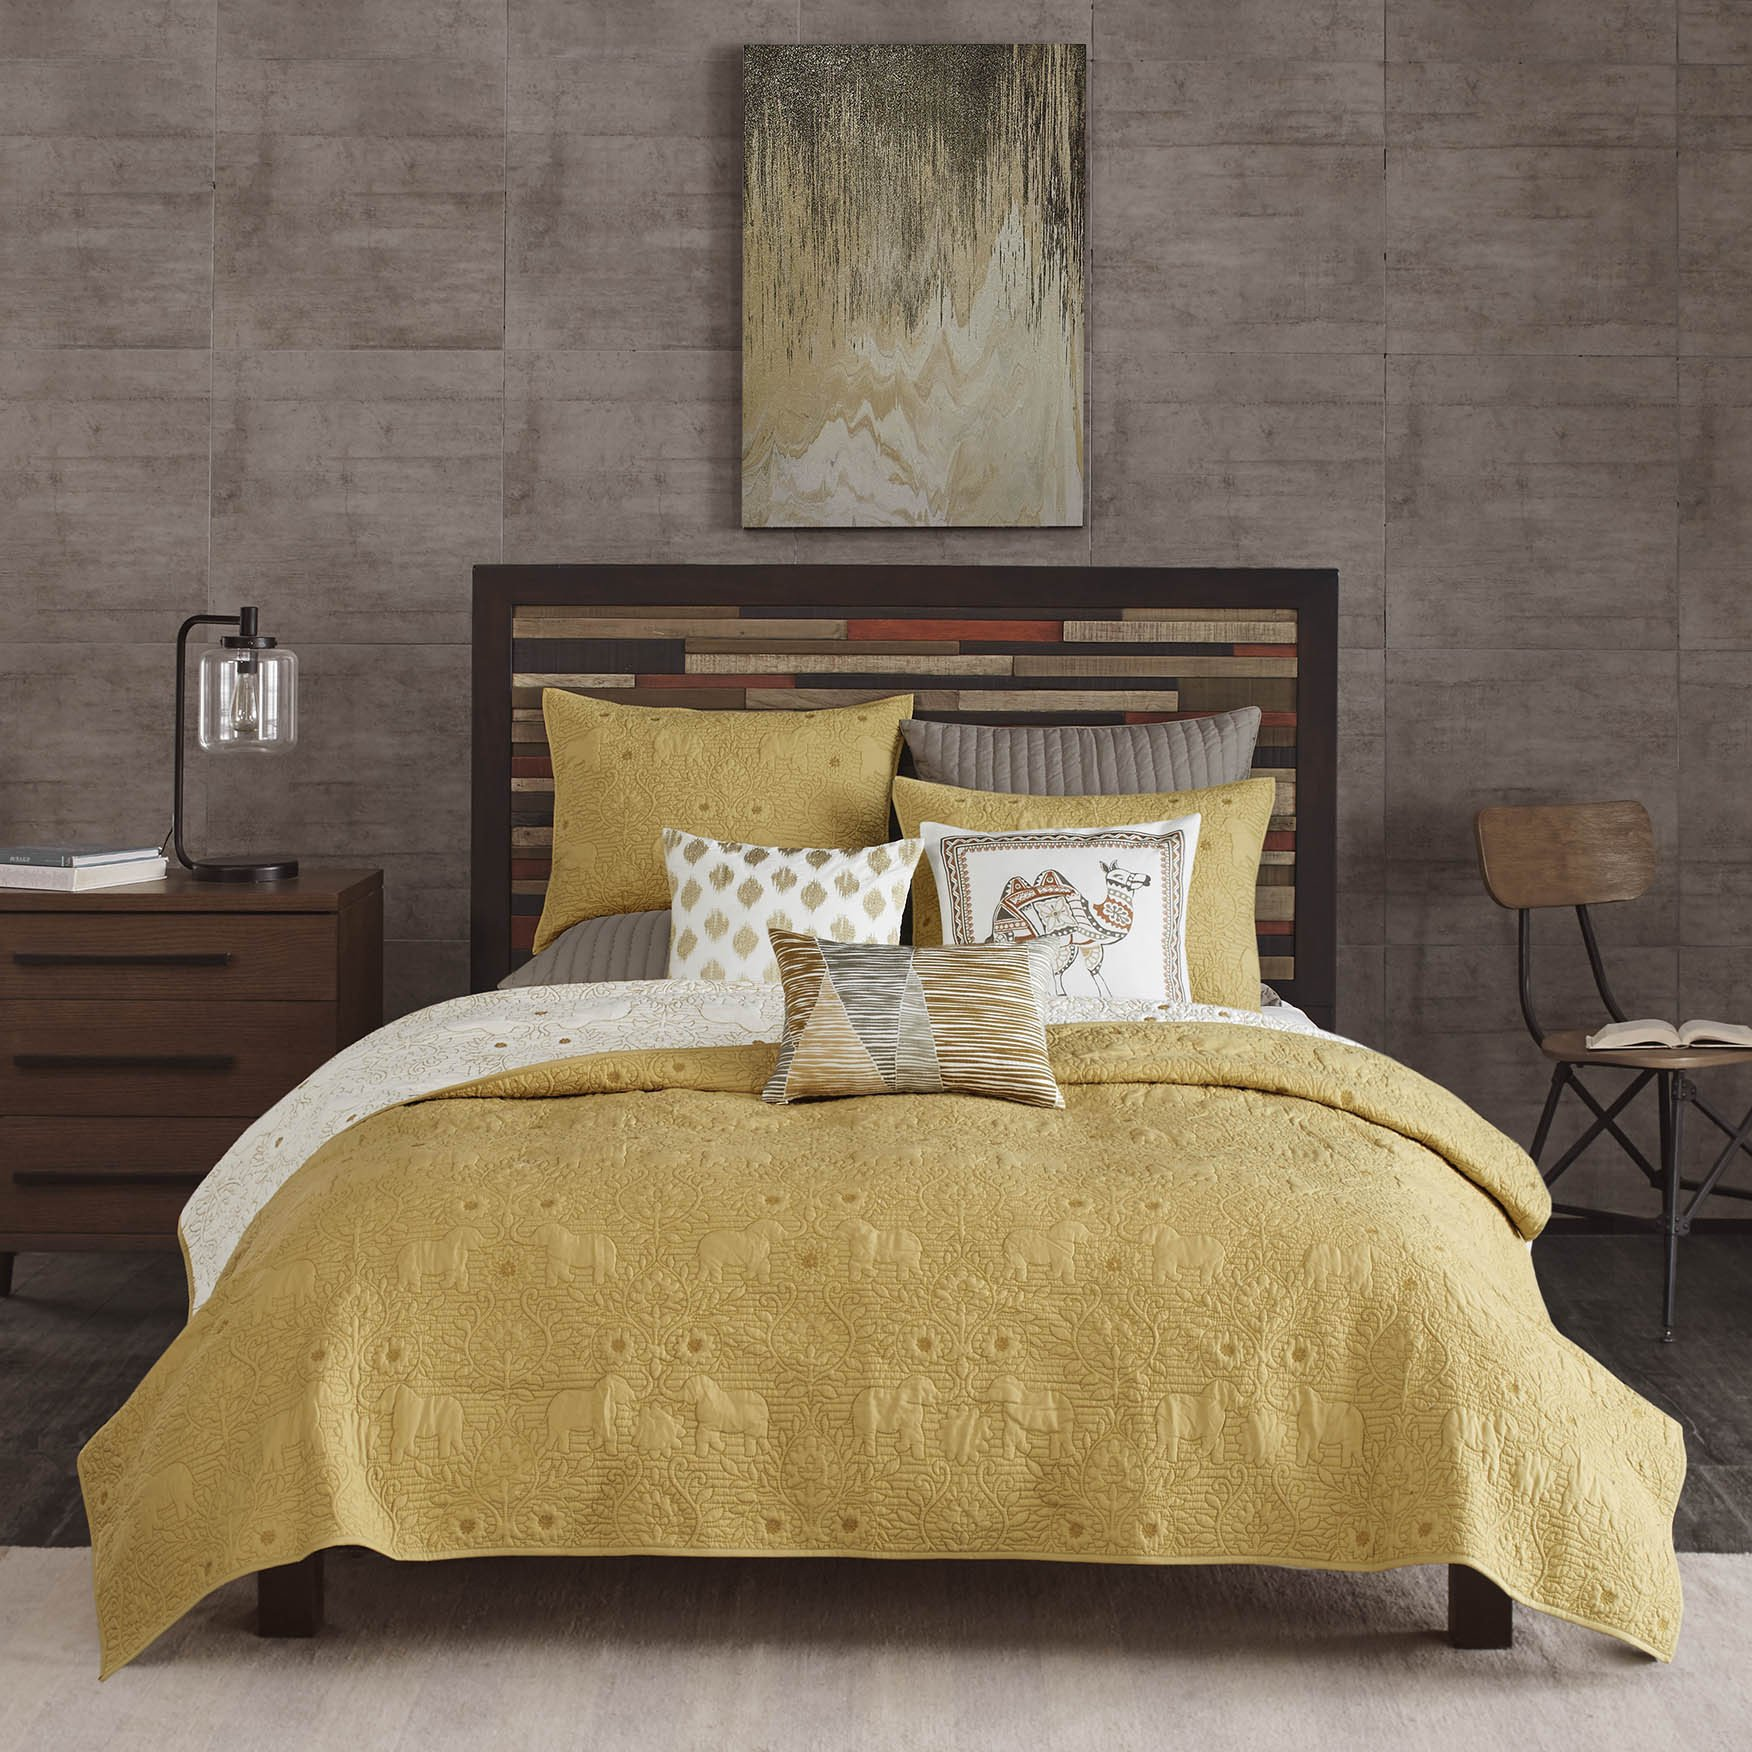 3 Piece Yellow Solid Color Reversible Full Queen Coverlet Set, White Light Yellow Off-white Animal Print Elephant Flowers Quilted Floral Adults Bedding Master Bedroom Comfortable Modern Casual, Cotton